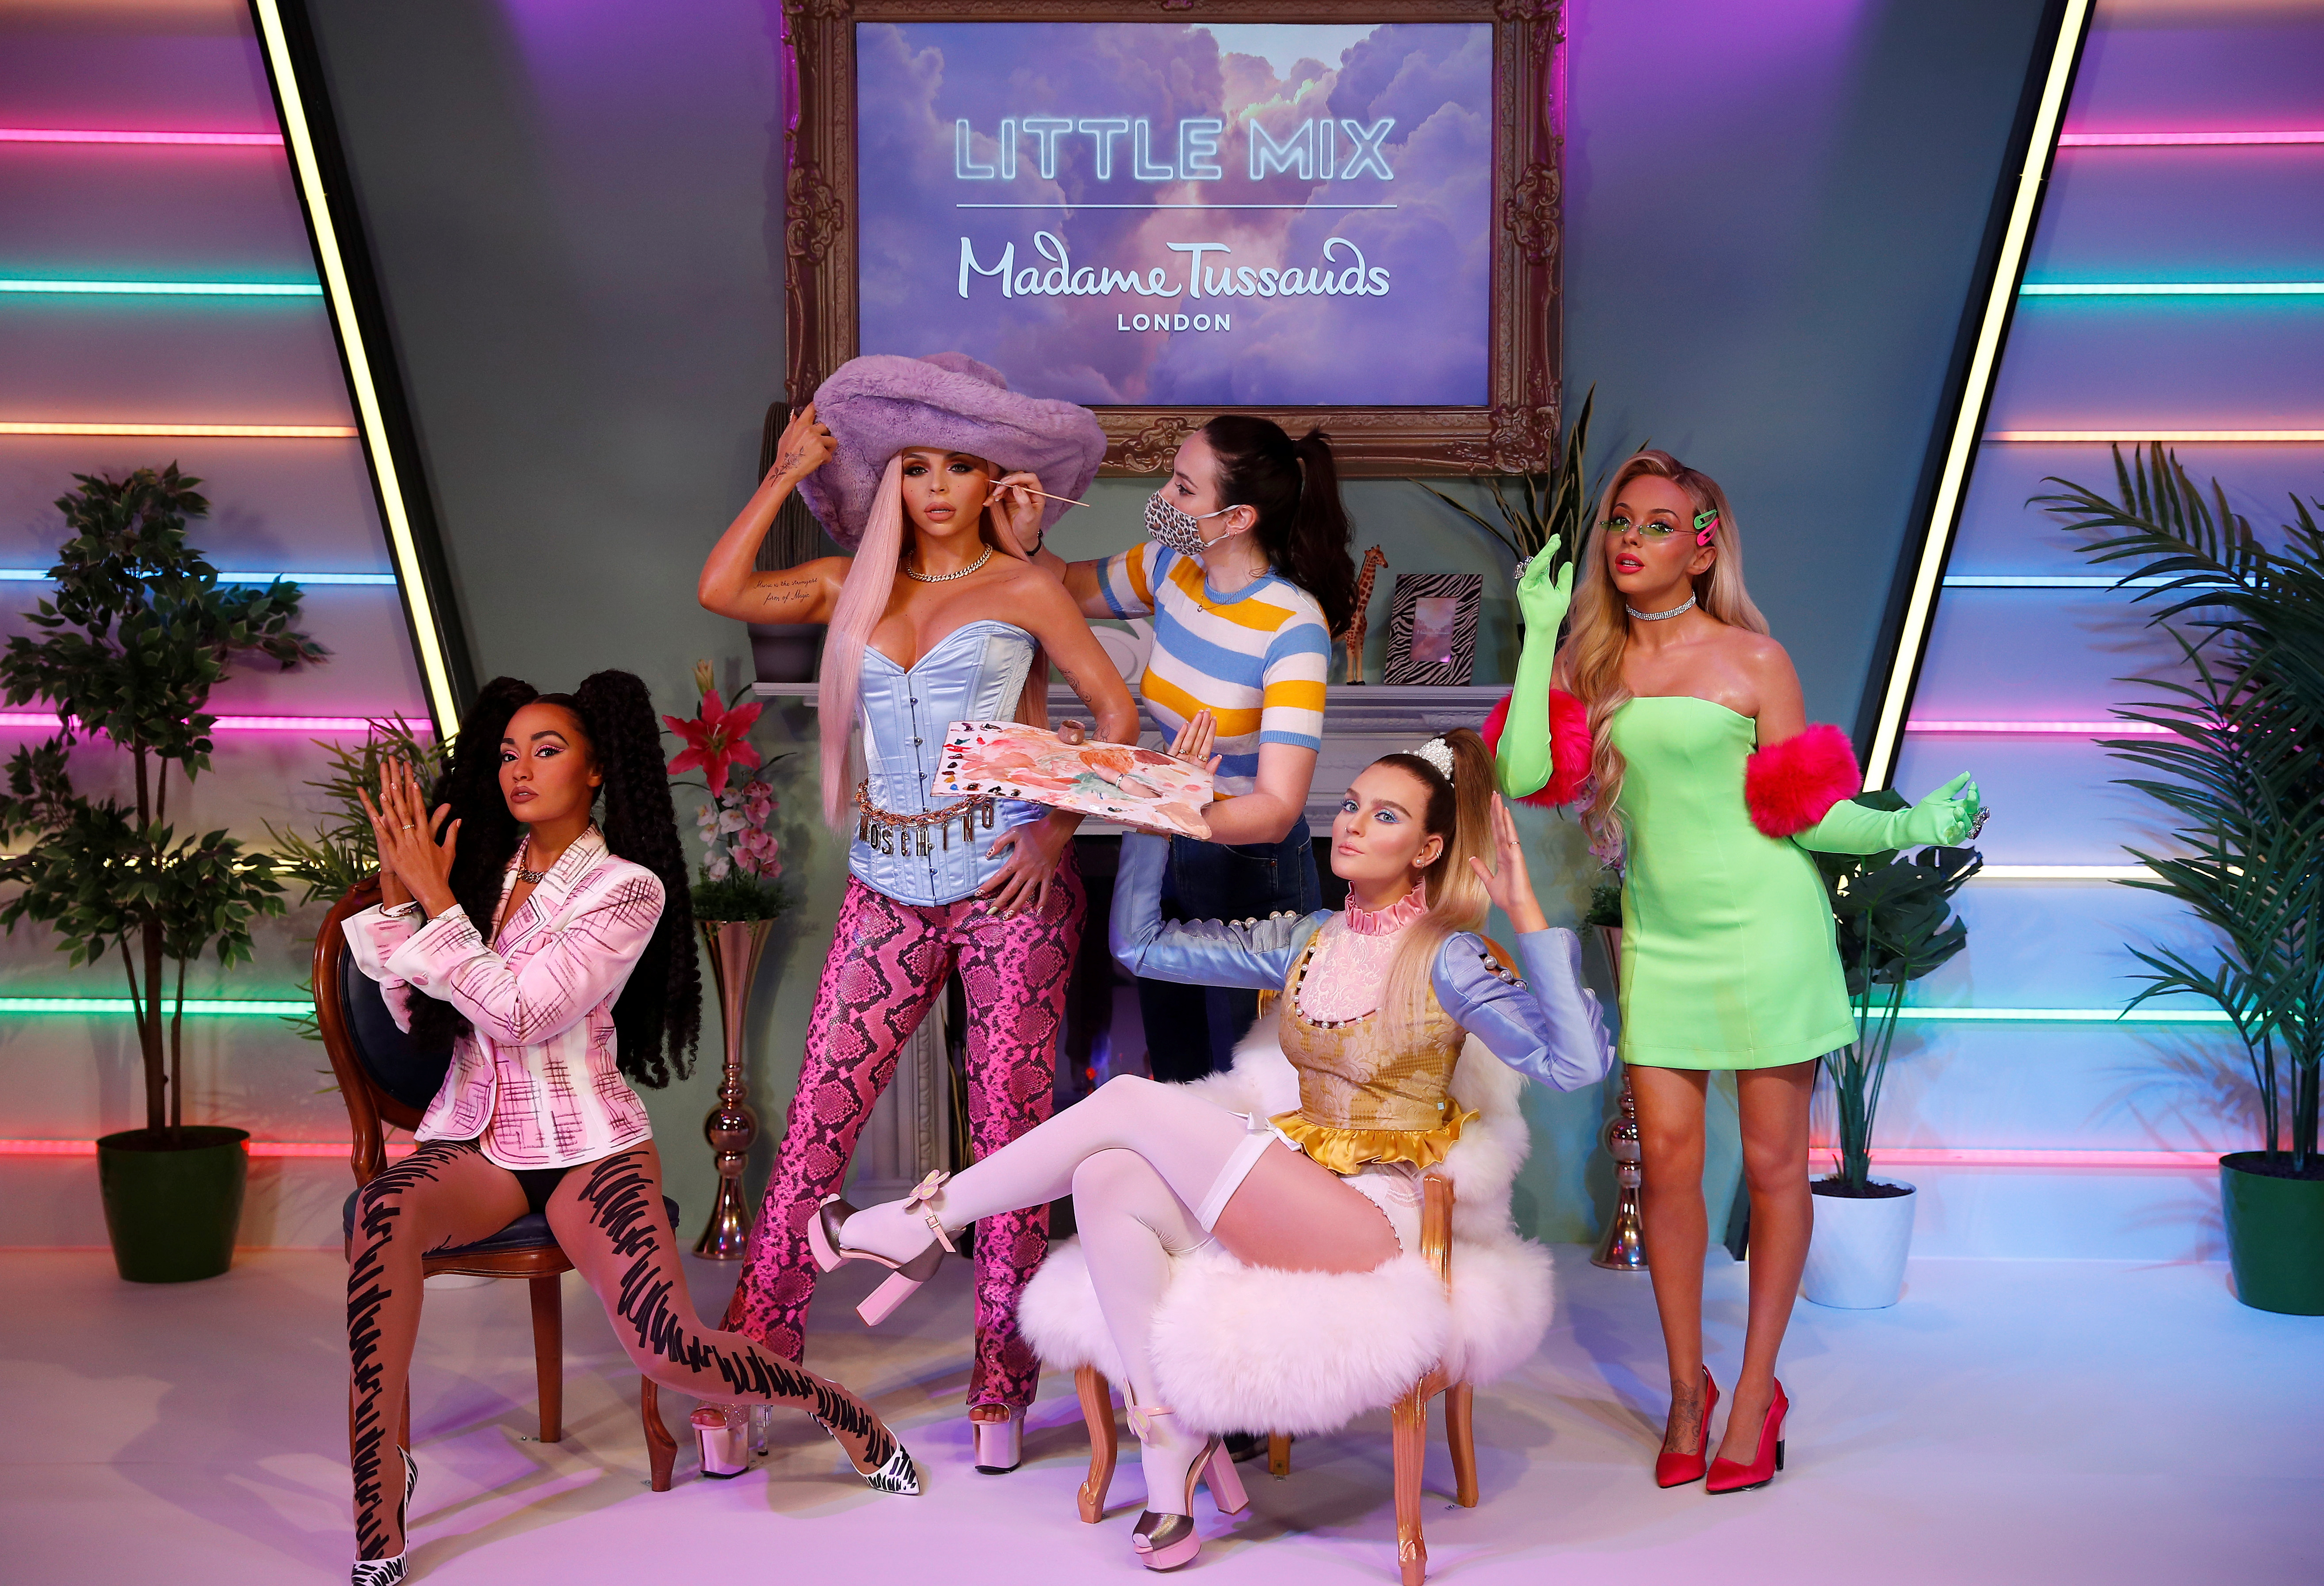 A waxworks artist retouches one of the wax figures at the unveiling of Little Mix waxwork figures at Madame Tussauds, in London, Britain, July 28, 2021.  REUTERS/Peter Nicholls